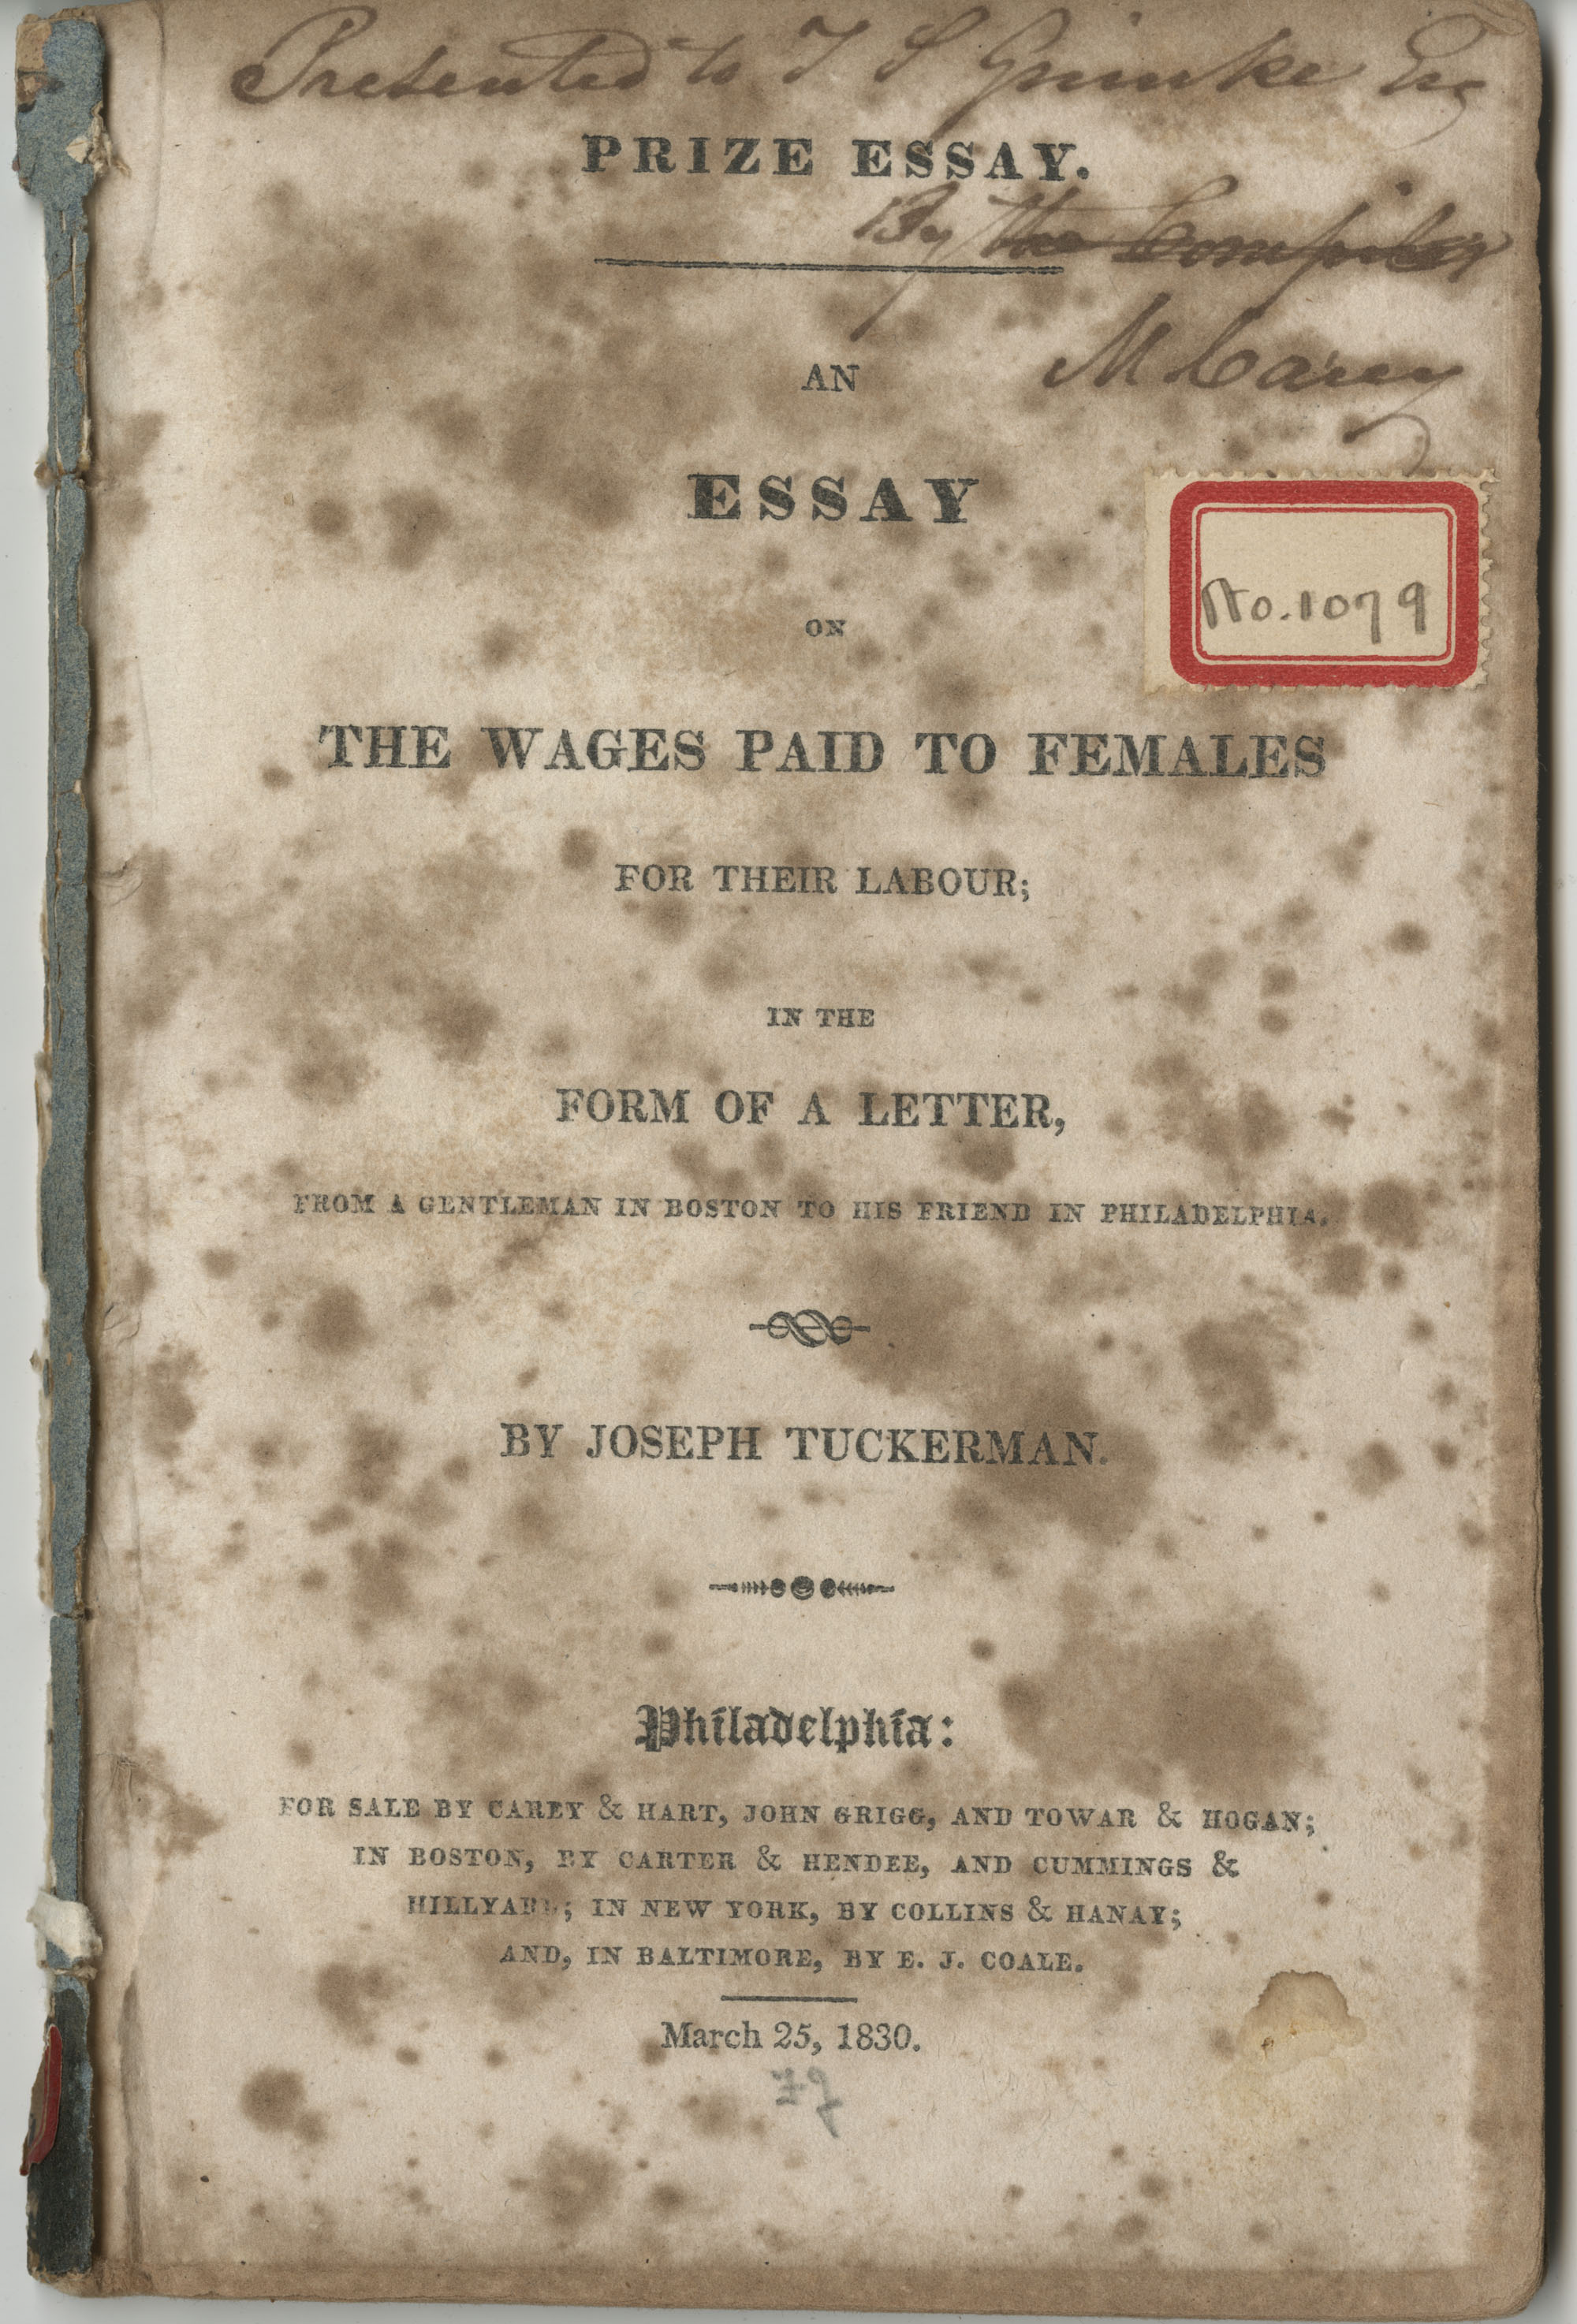 Essay on the wages paid to females for their labour, Title page